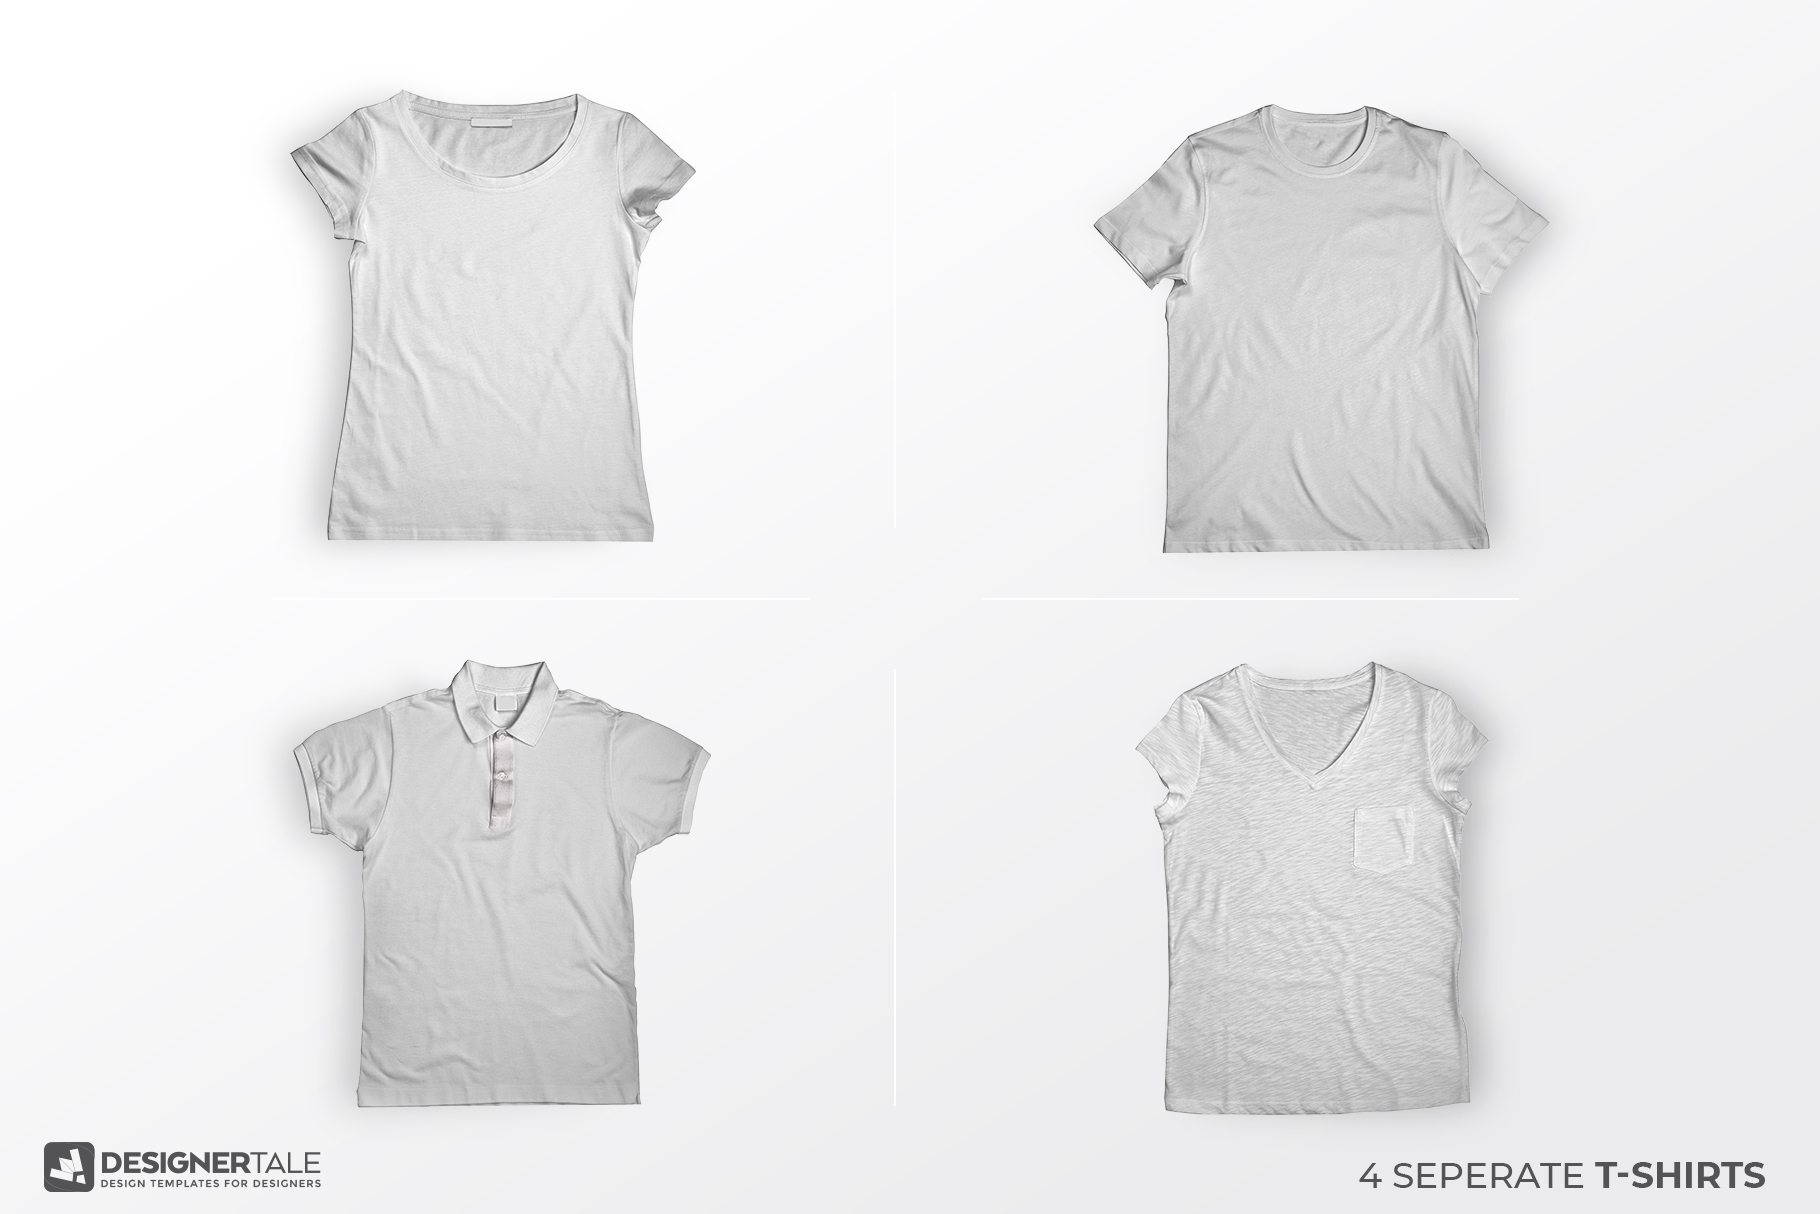 multiple-collar-type-t-shirt-mockup-image-preview-2